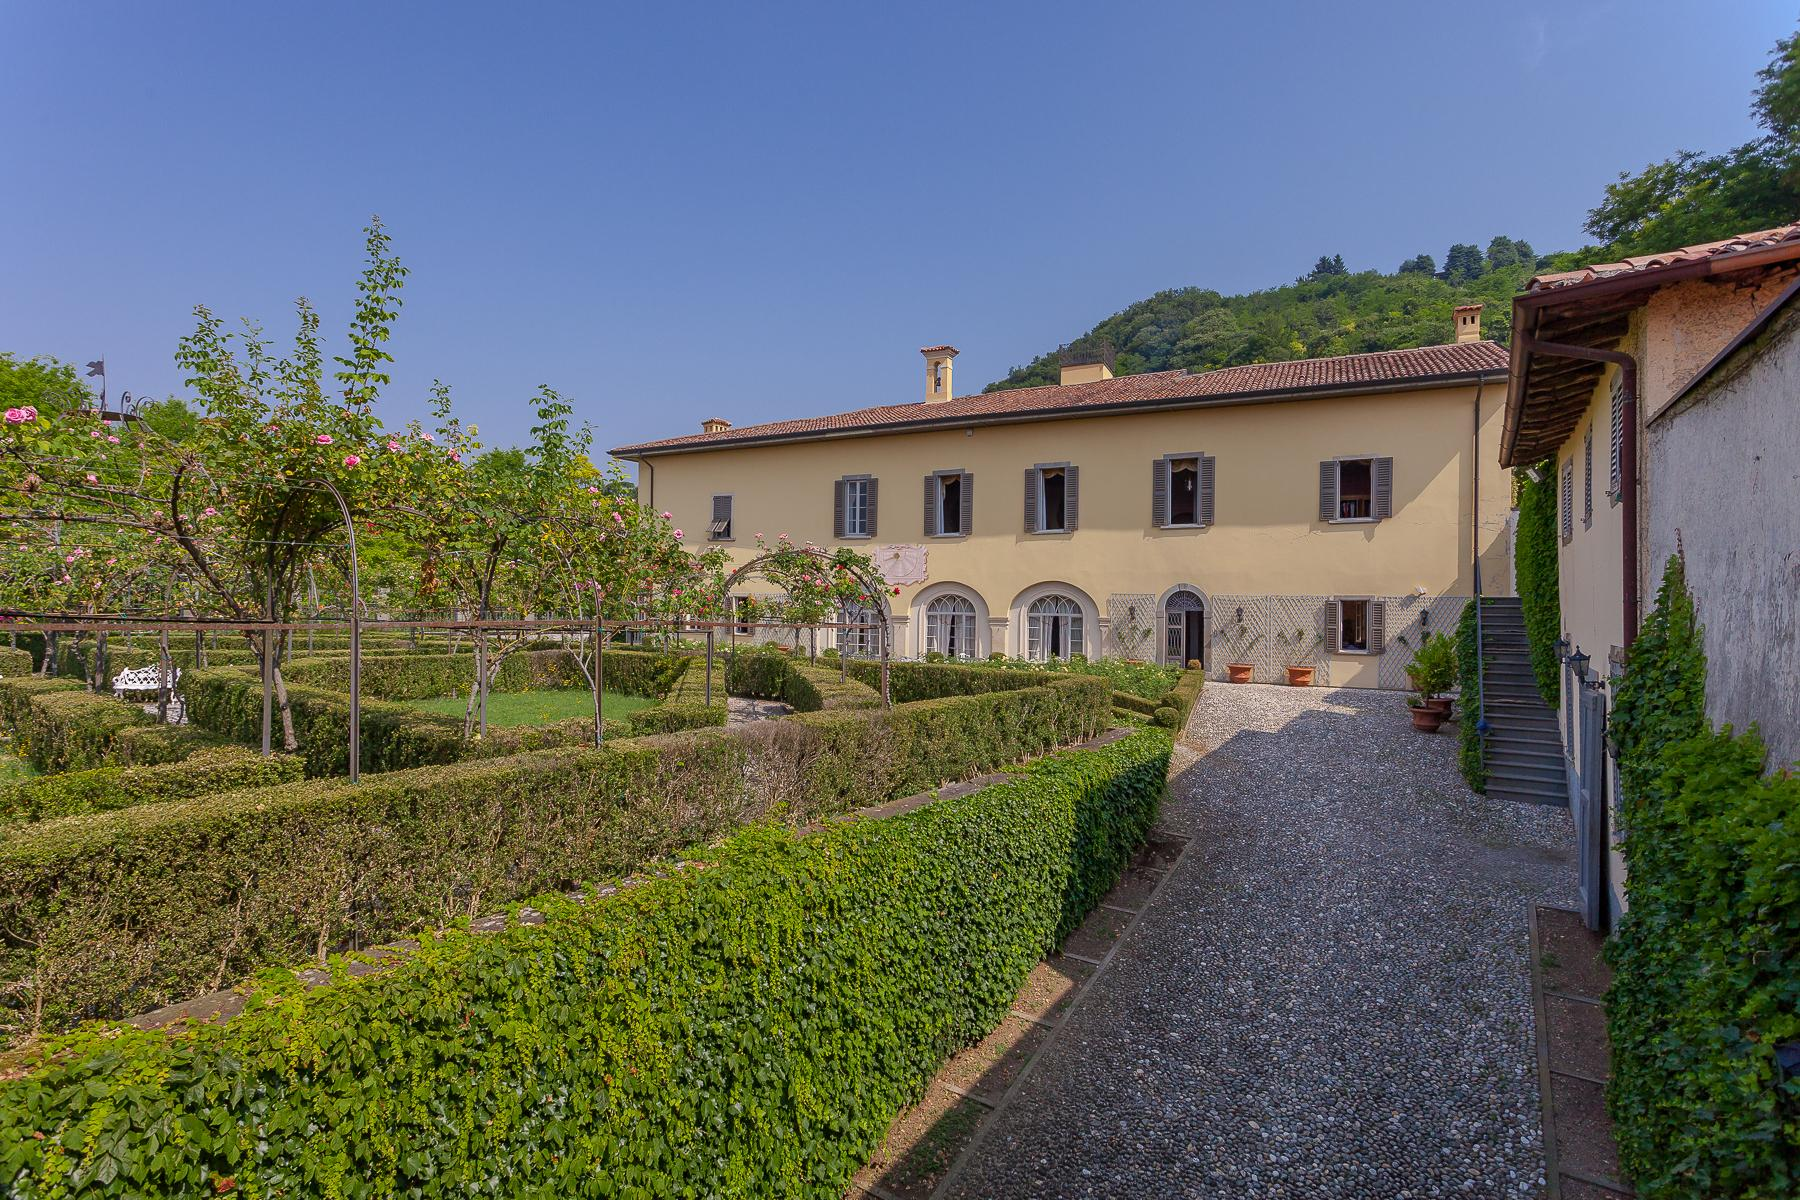 Charming villa with Italian-style garden and park - 3